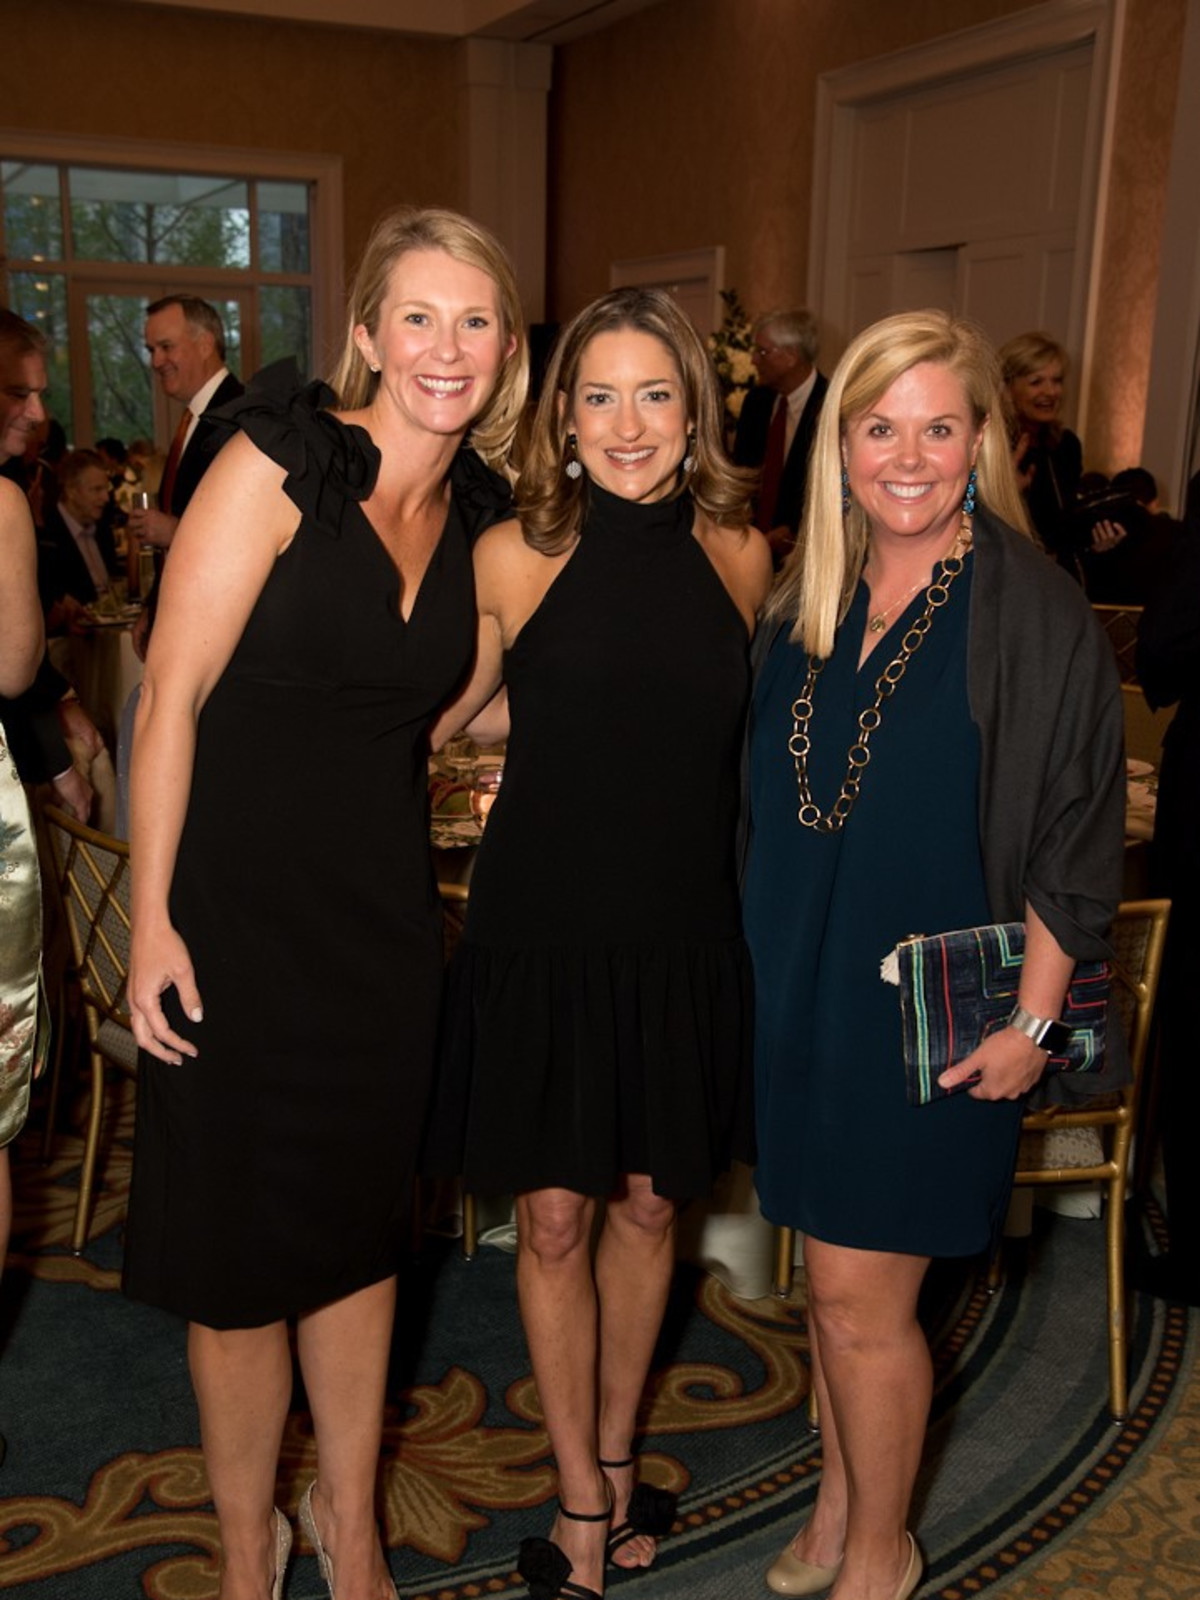 Ronald McDonald gala, Jamie Sowa, April Cook, and Holly Wittorf